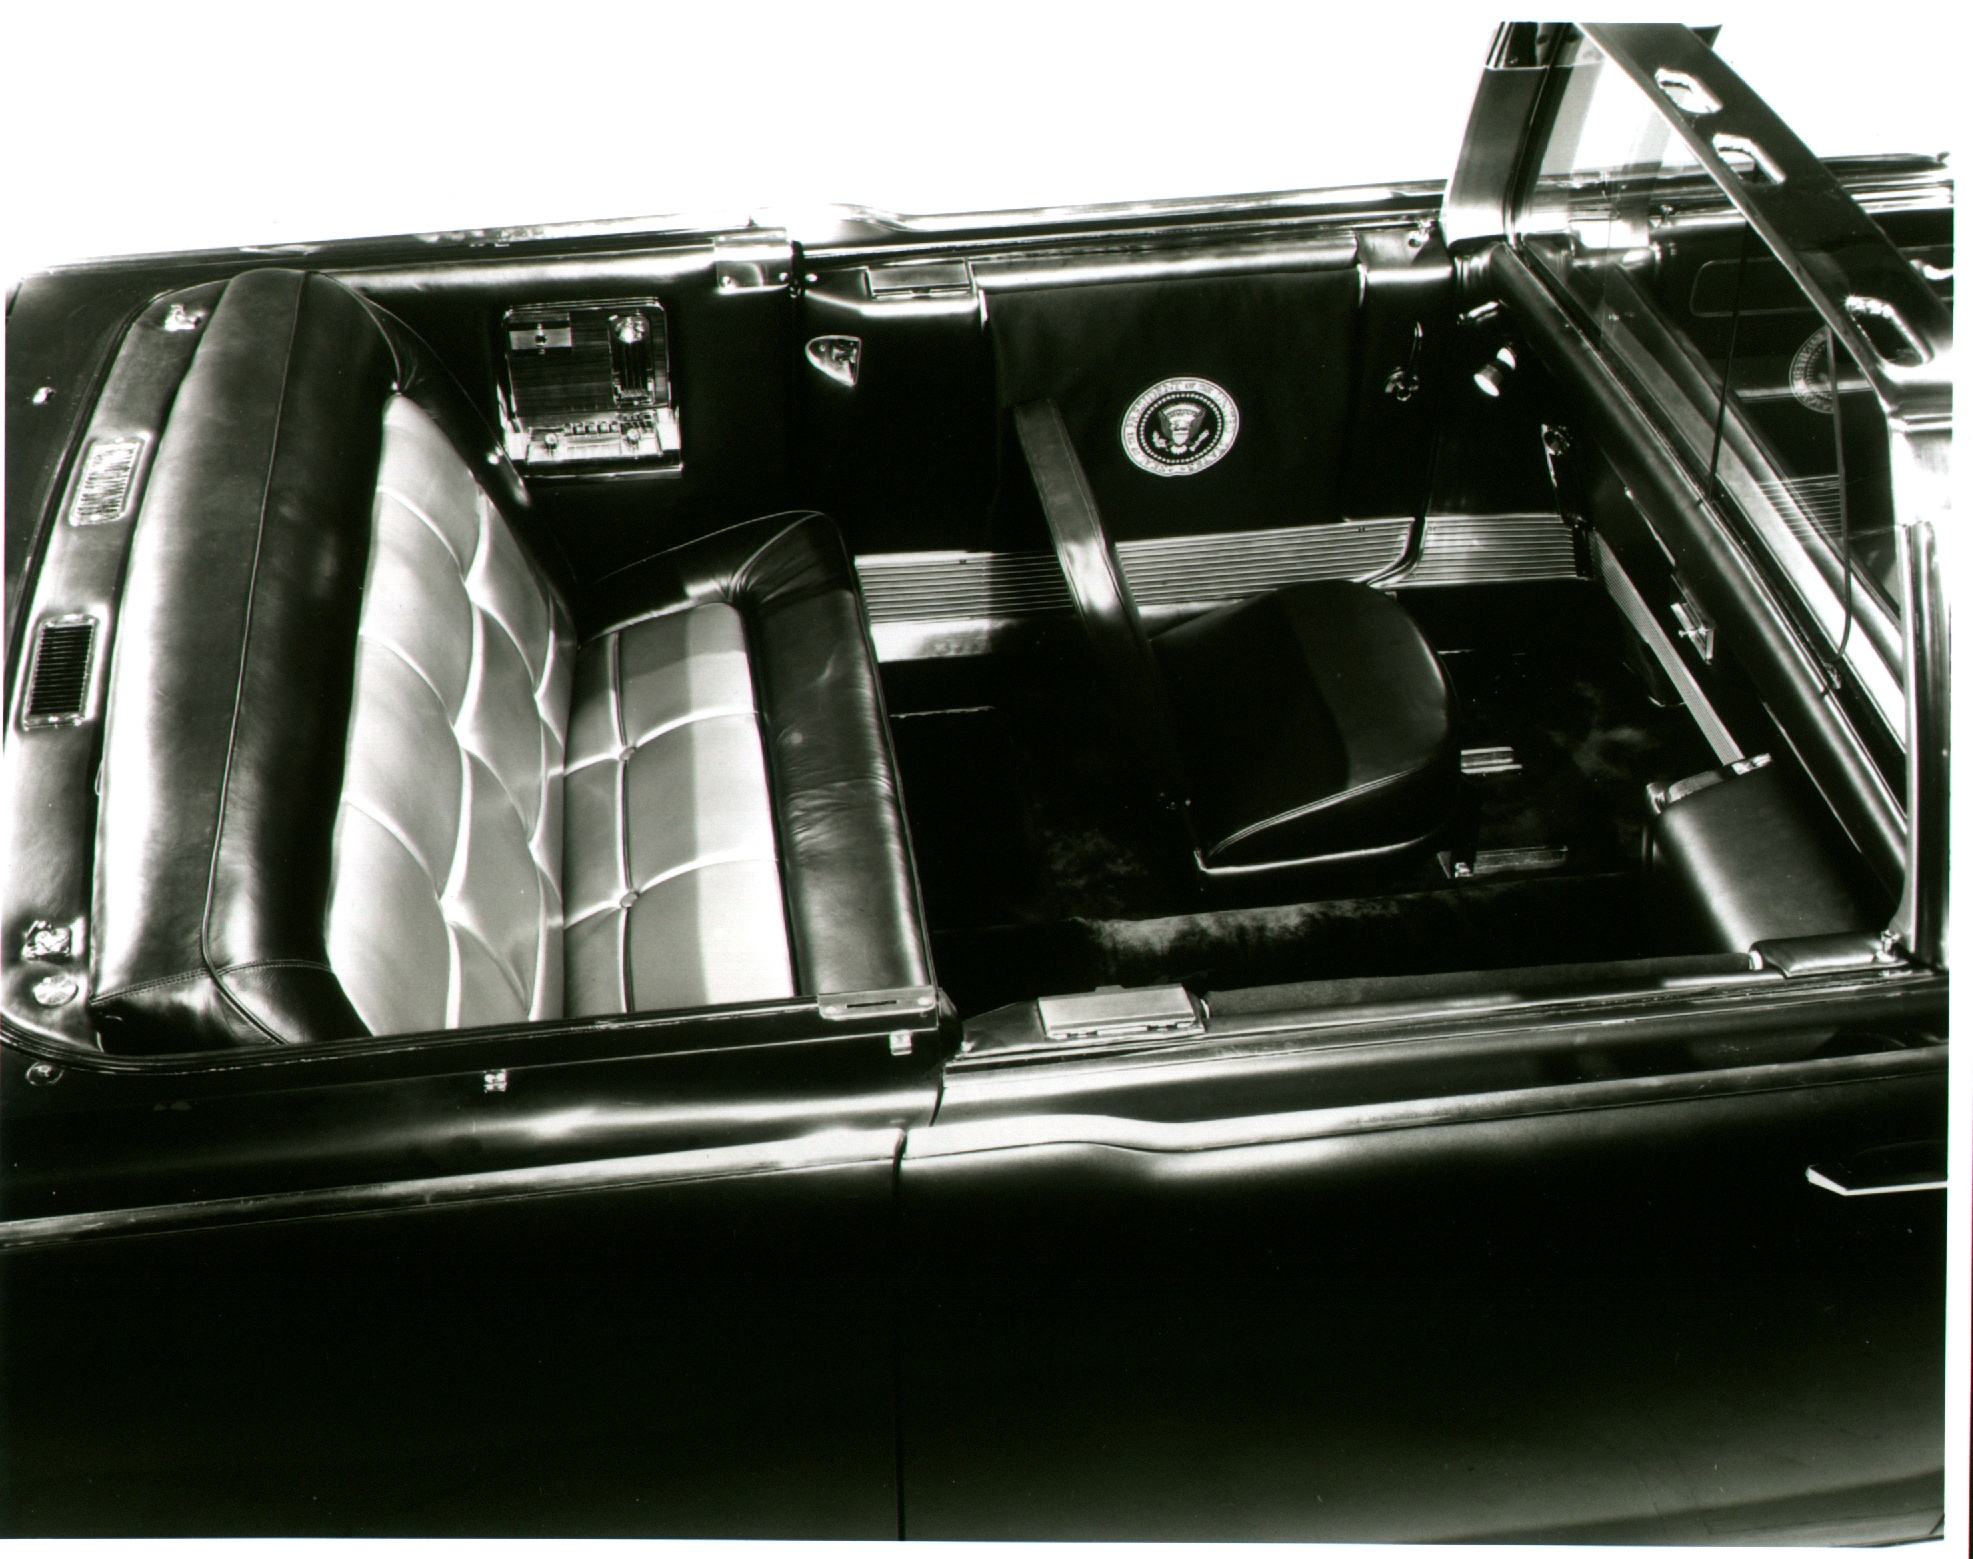 jfk assassination presidential limousine ssx the privacy window